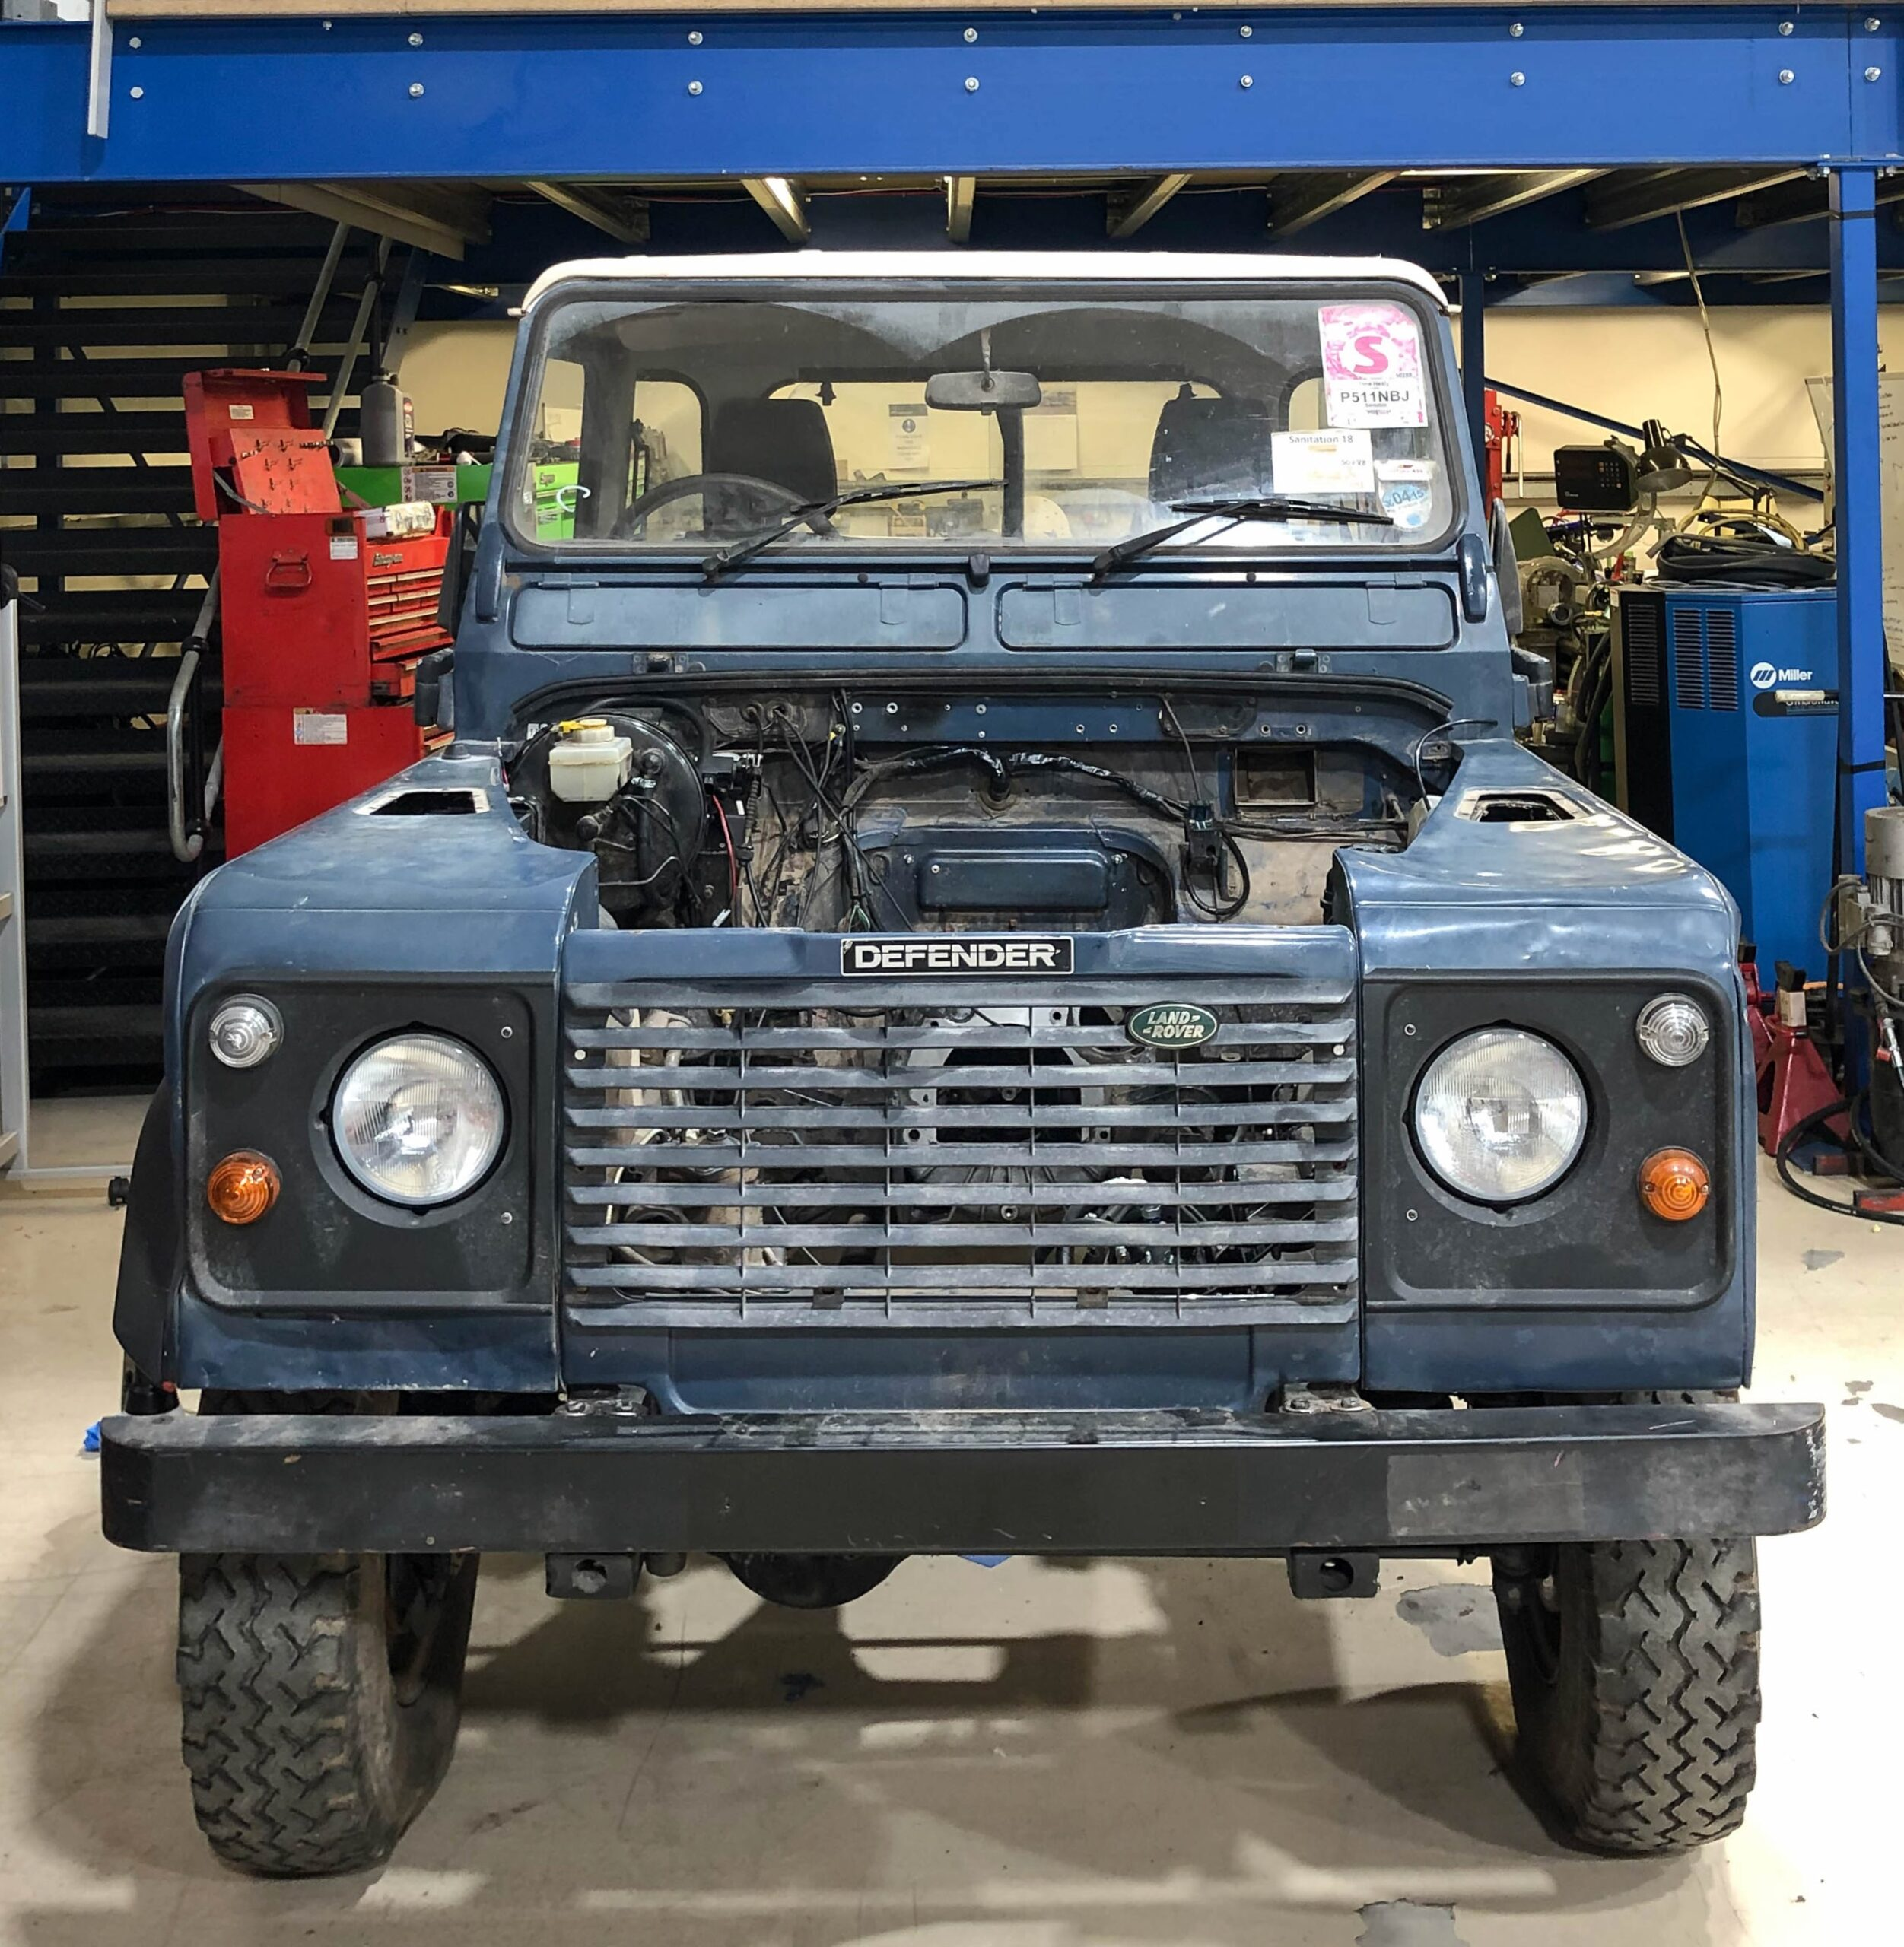 Electric Land Rover being built for Glastonbury Festivals